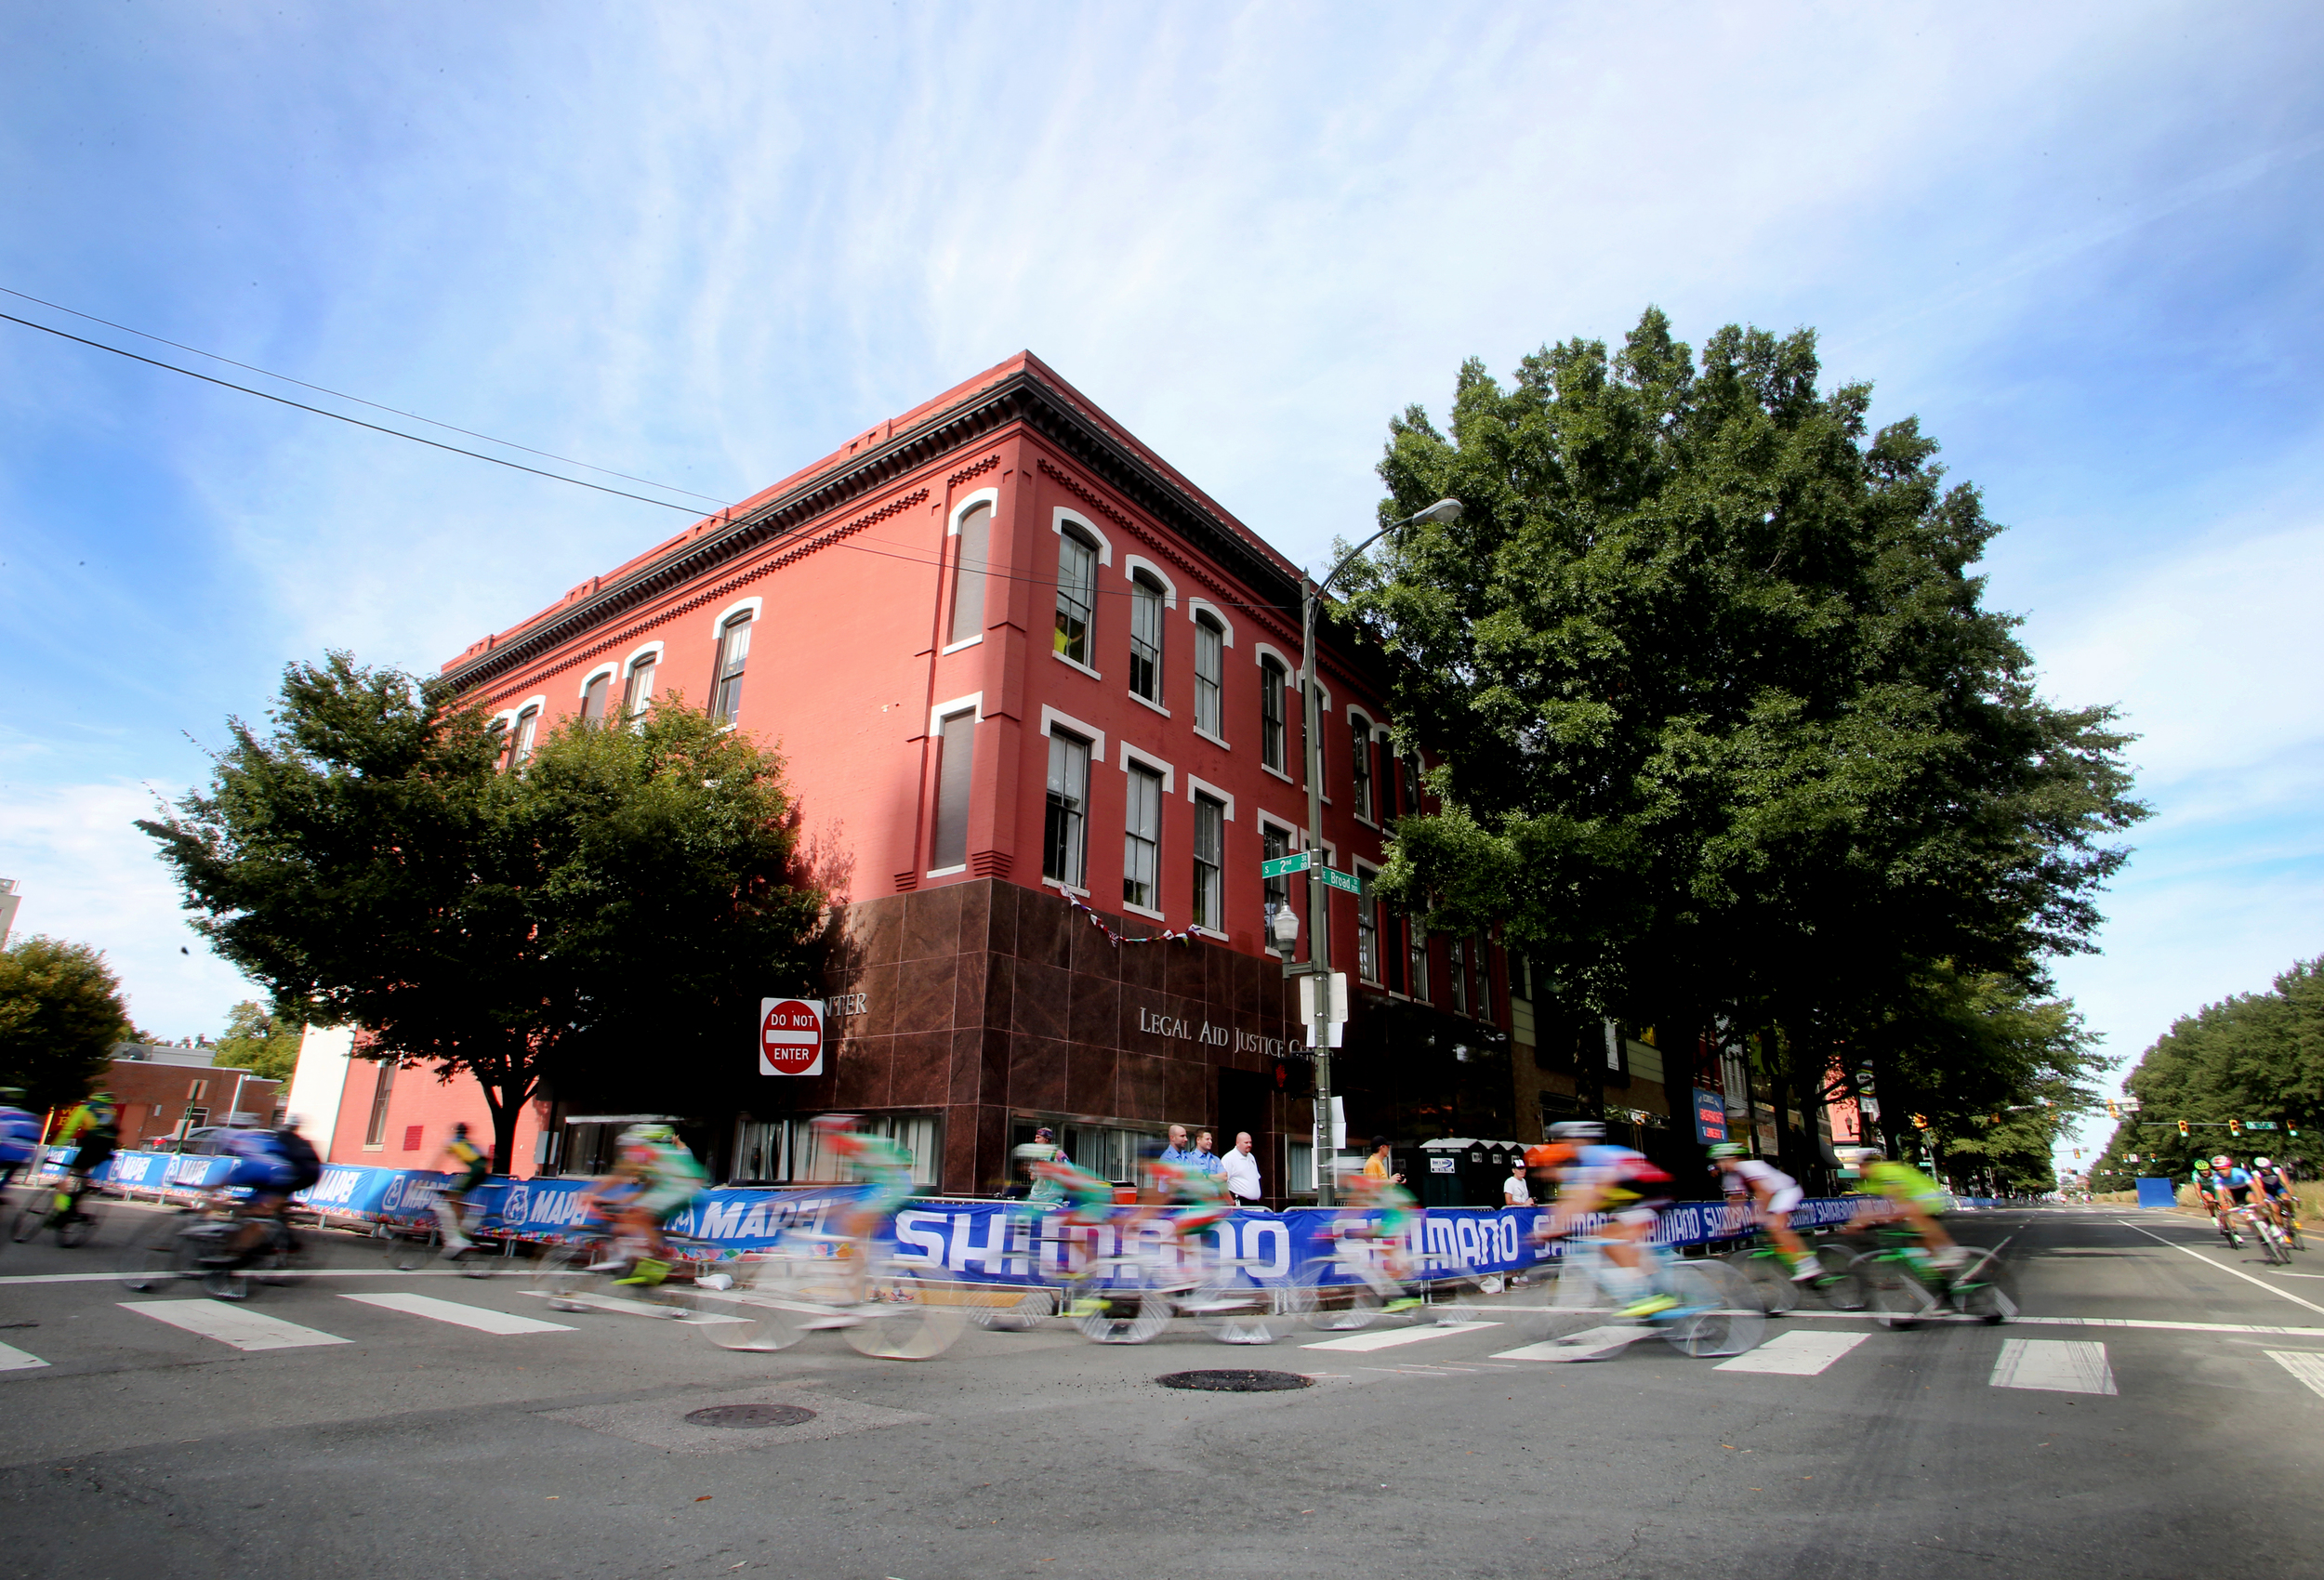 Cyclists ride in the Road Circuit Training portion of the UCI Road World Championships cycling races in Richmond, Va., Thursday, Sept. 24, 2015. (AP Photo/Jason Hirschfeld)